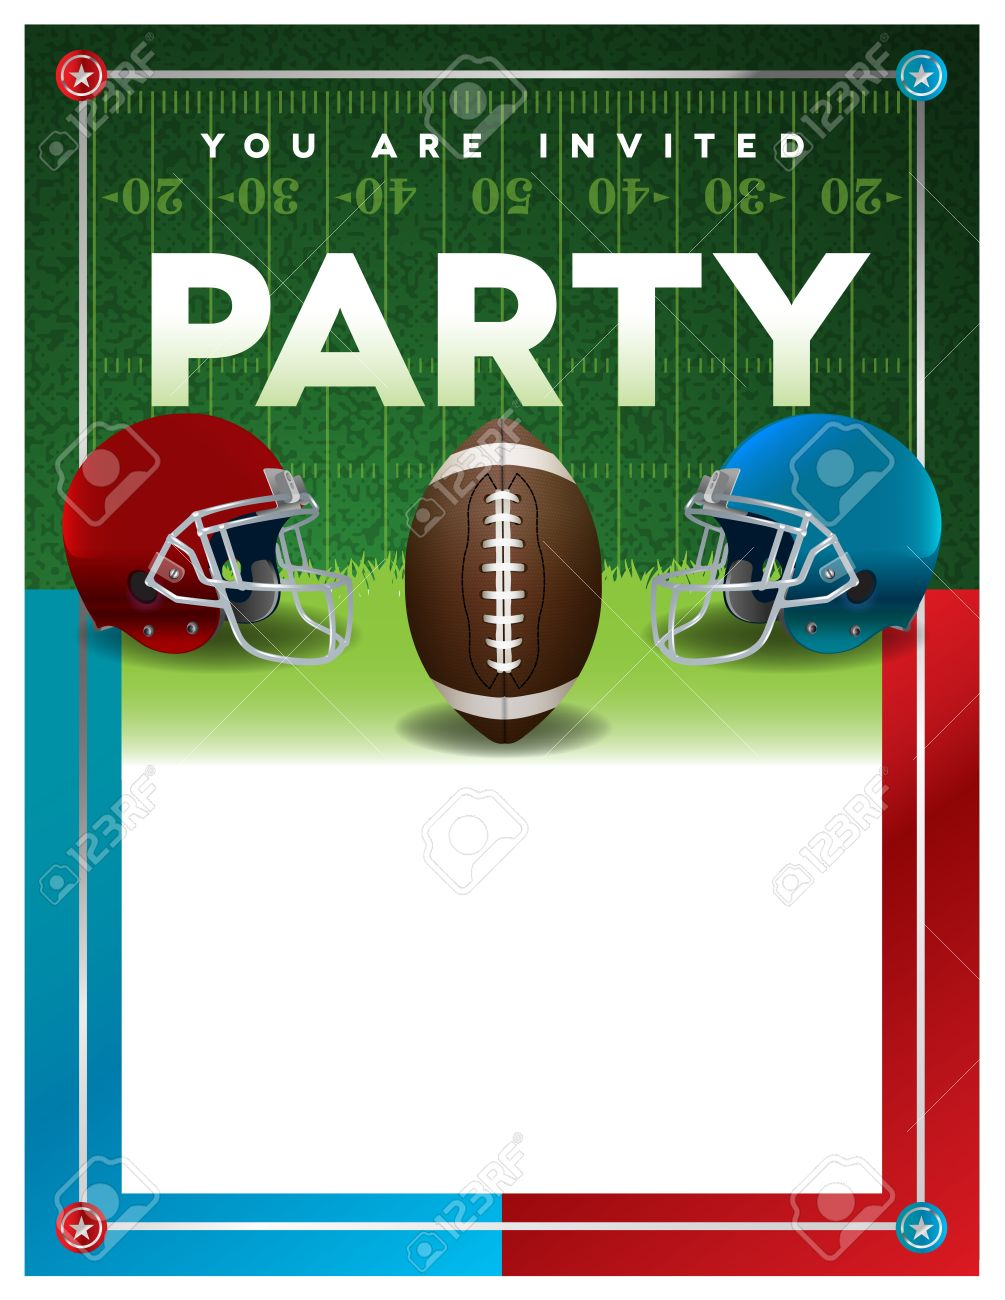 an american football party invitation flyer template design an american football party invitation flyer template design room for copy vector eps 10